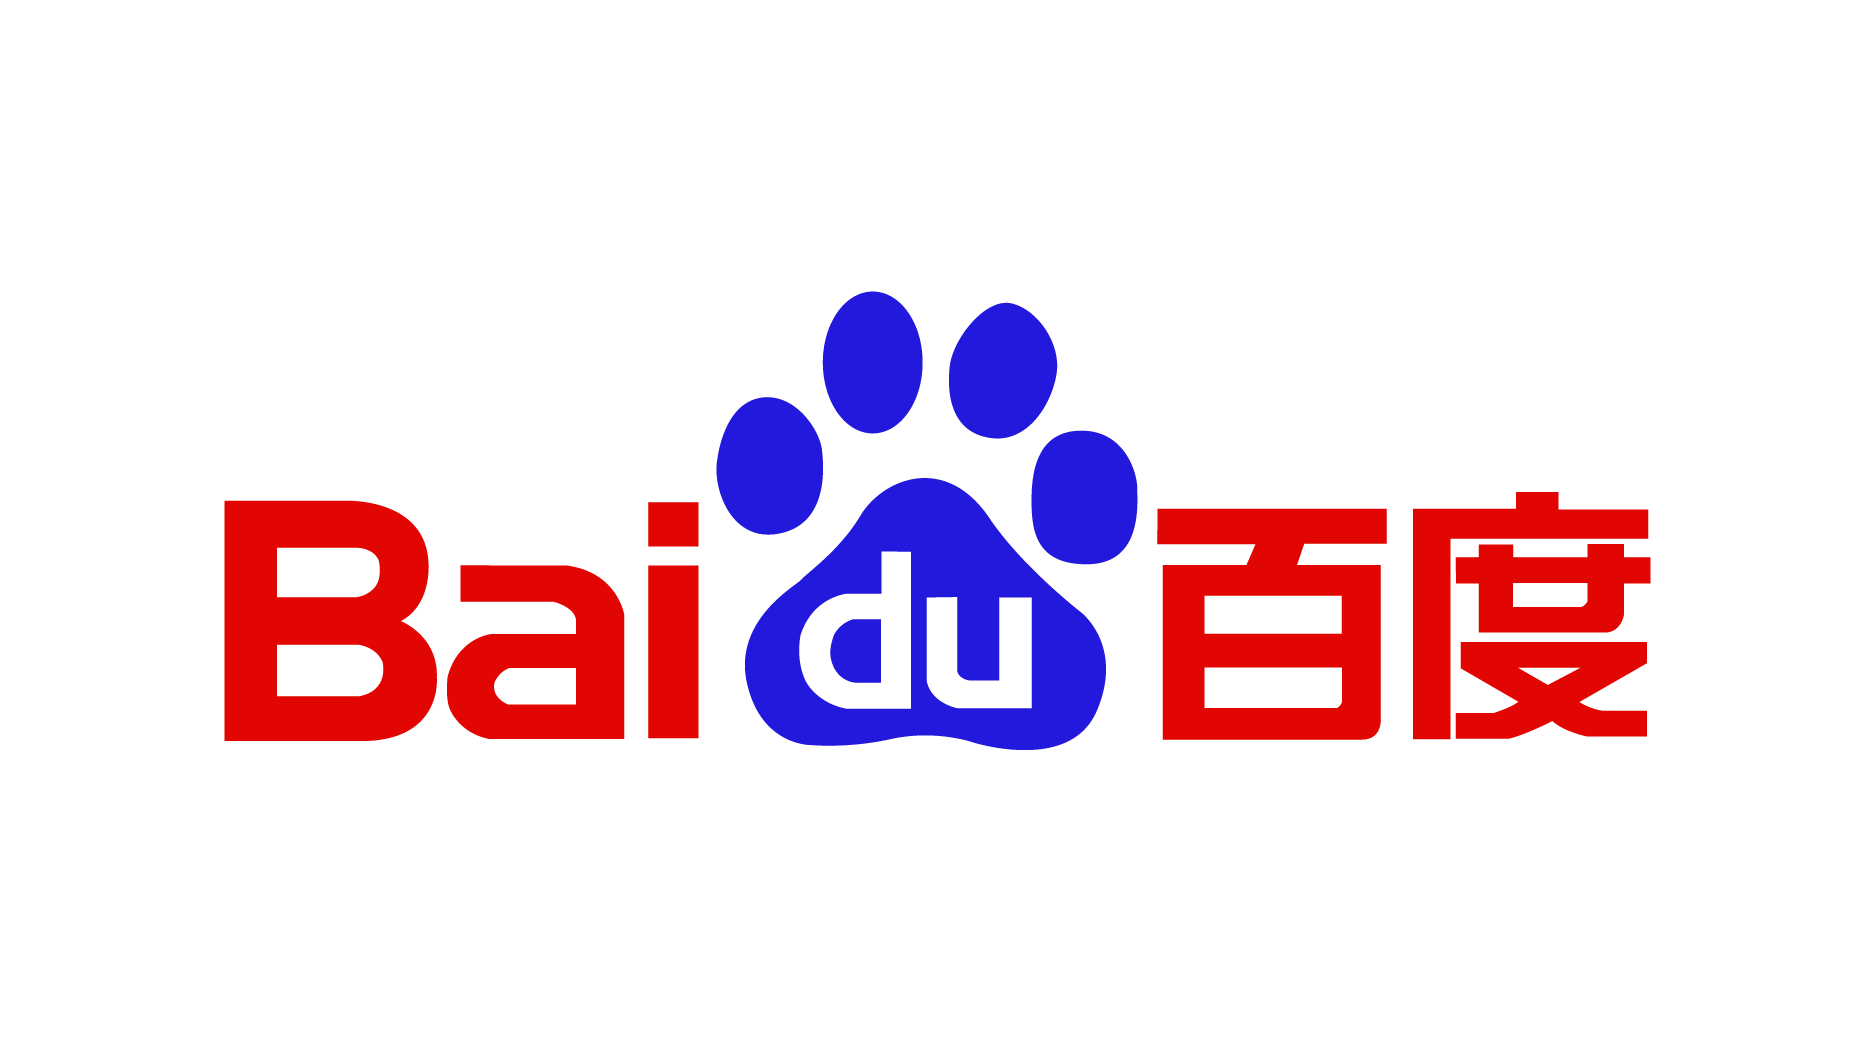 baidu logo transparent png stickpng